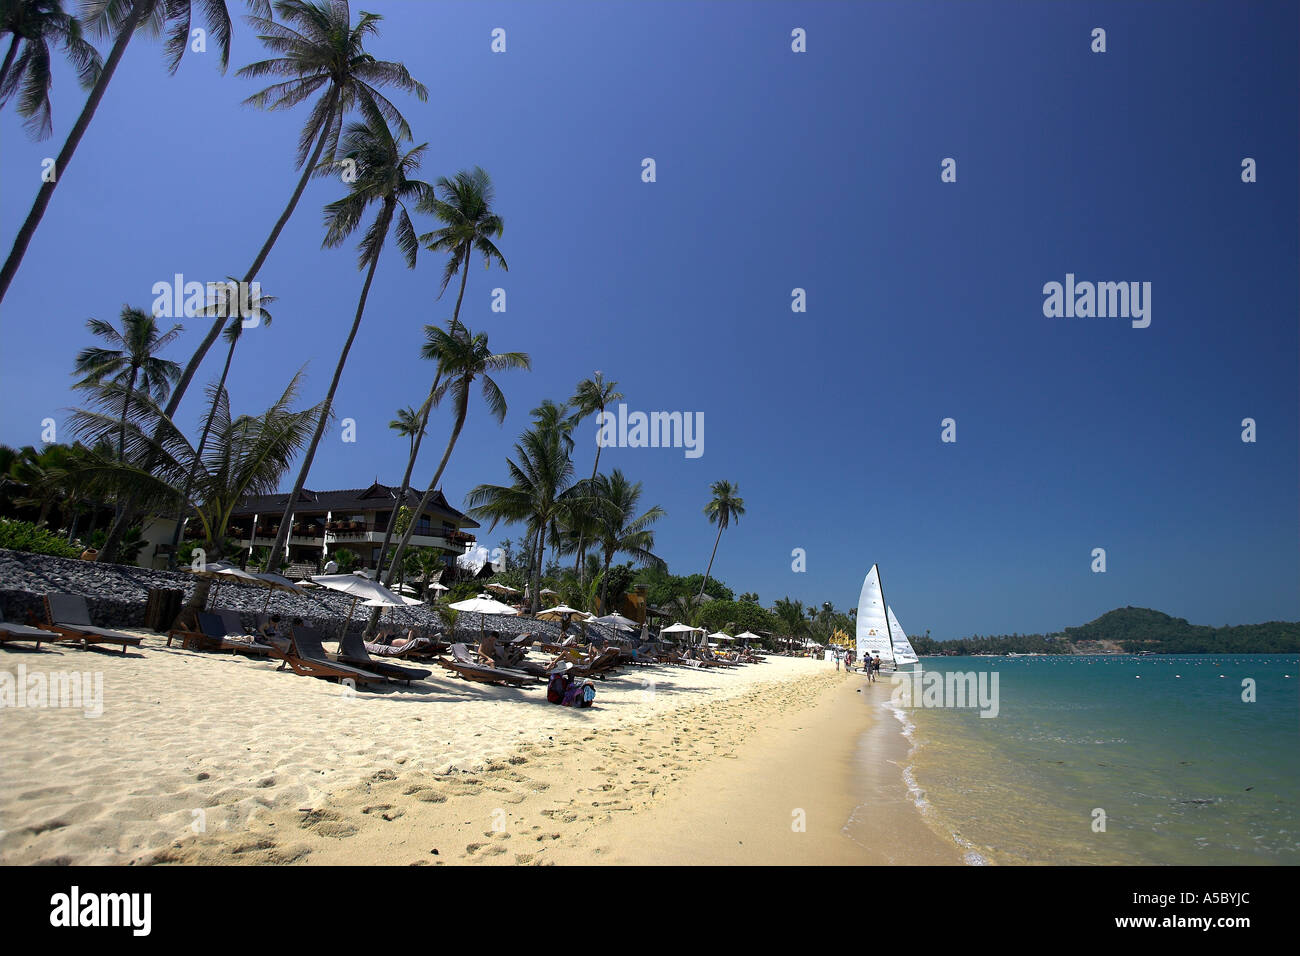 Leaning palm trees and sunshades line Bo Phut Beach as off beach catamaran is launched Ko Samui island Thailand - Stock Image